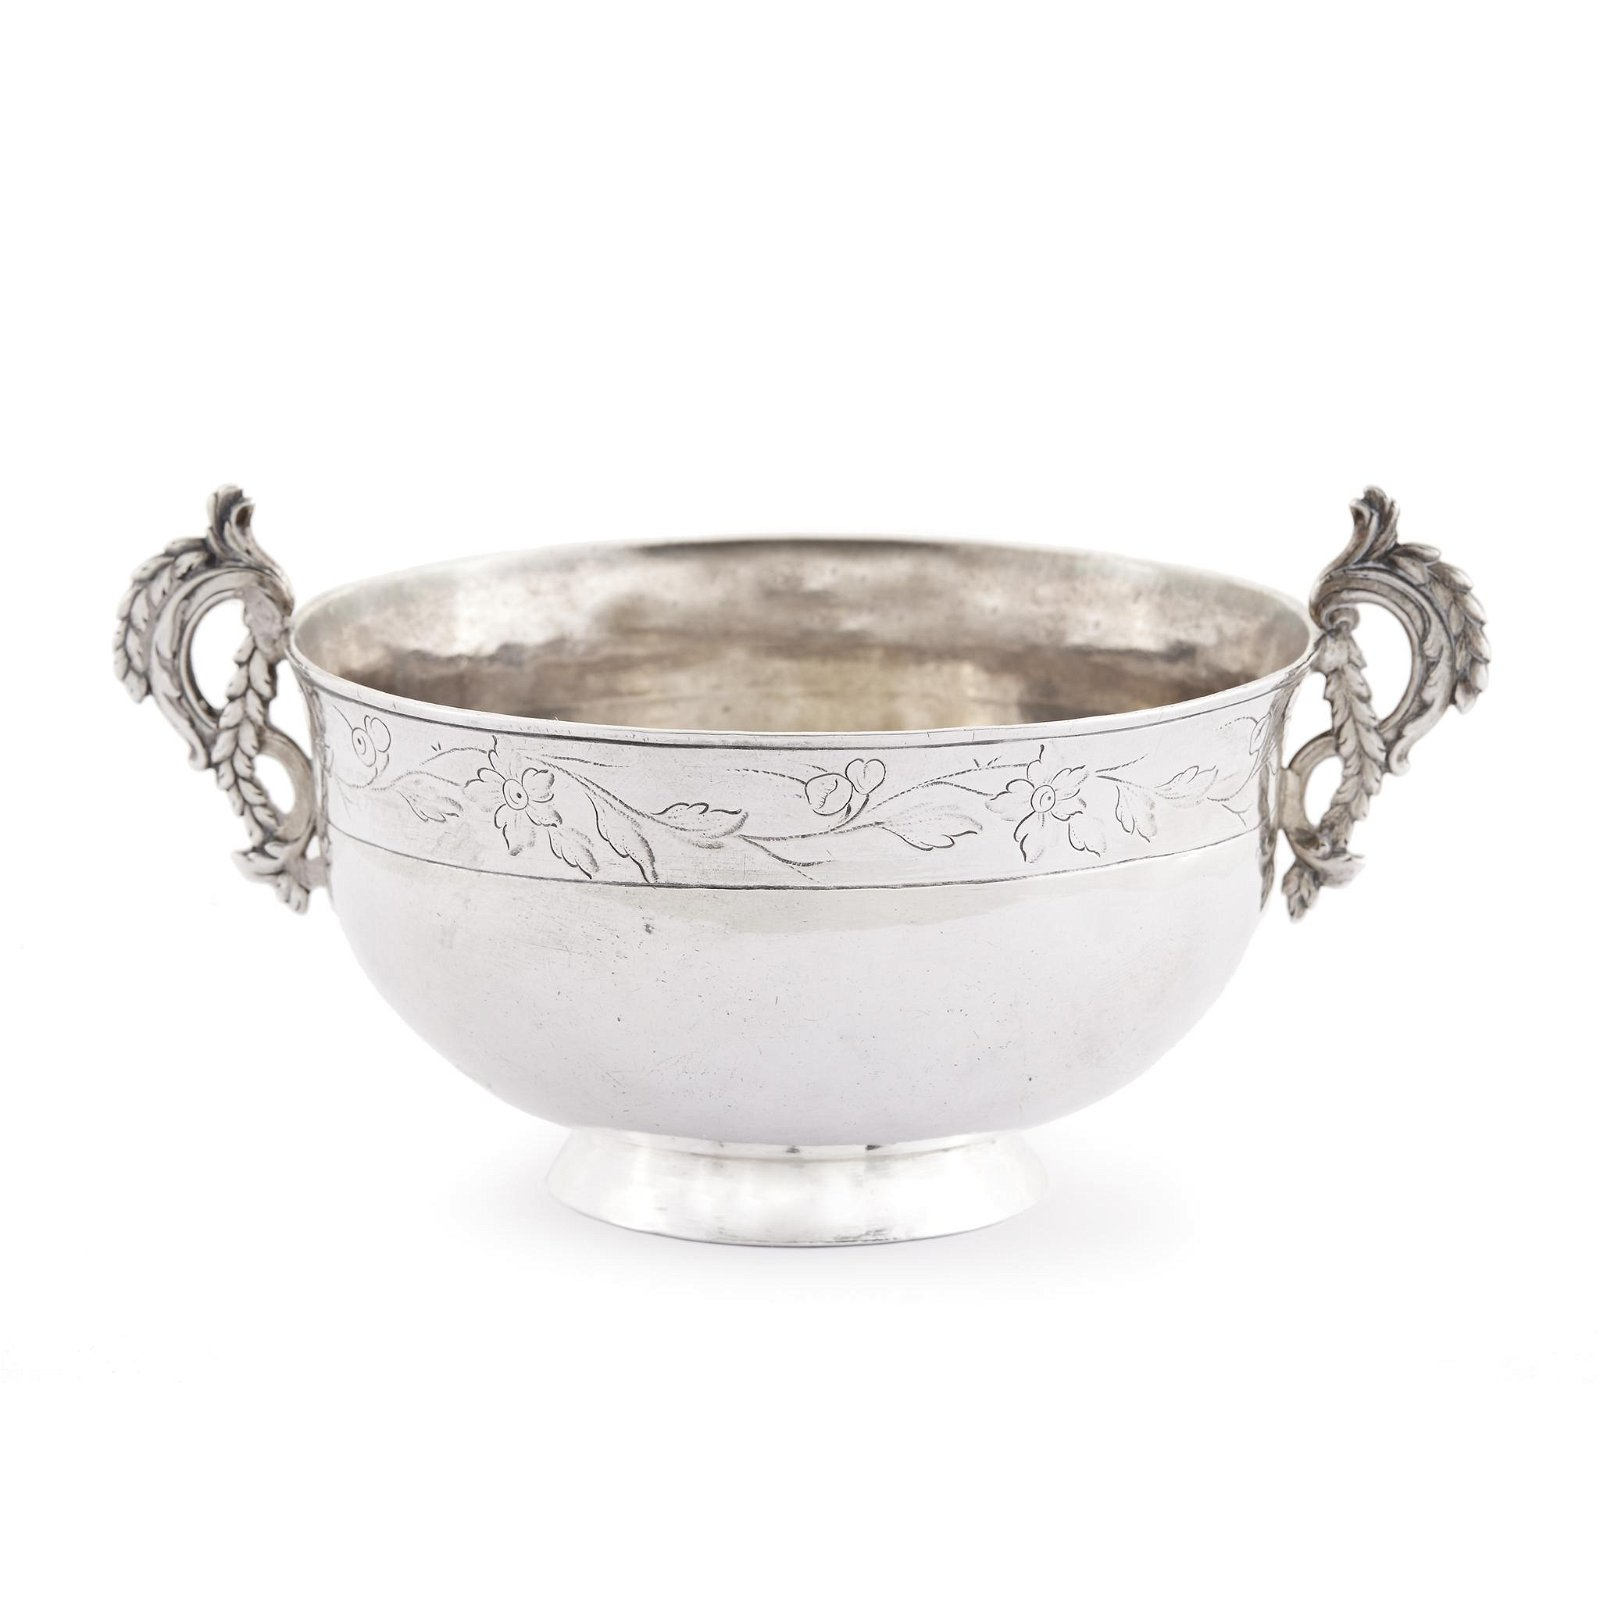 Spanish Colonial silver footed drinking vessel,